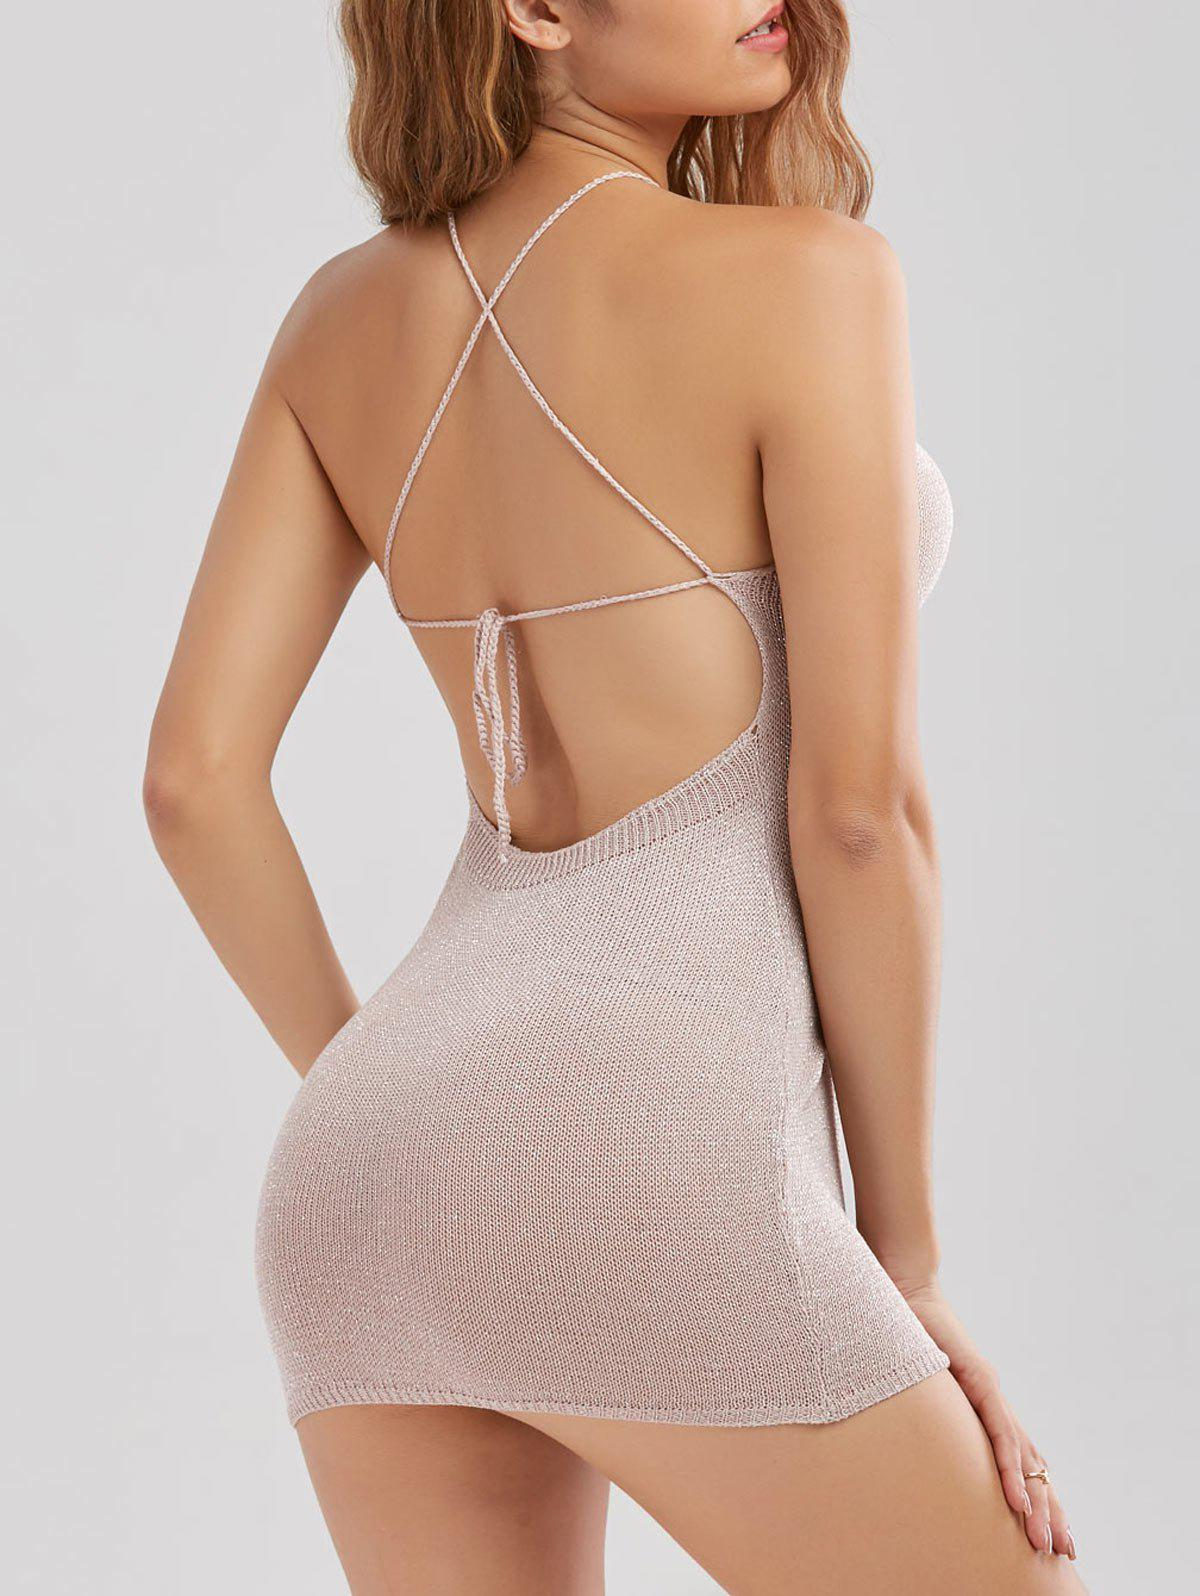 Sale Knitted Criss Cross Backless Sheer Mini Tight Club Dress